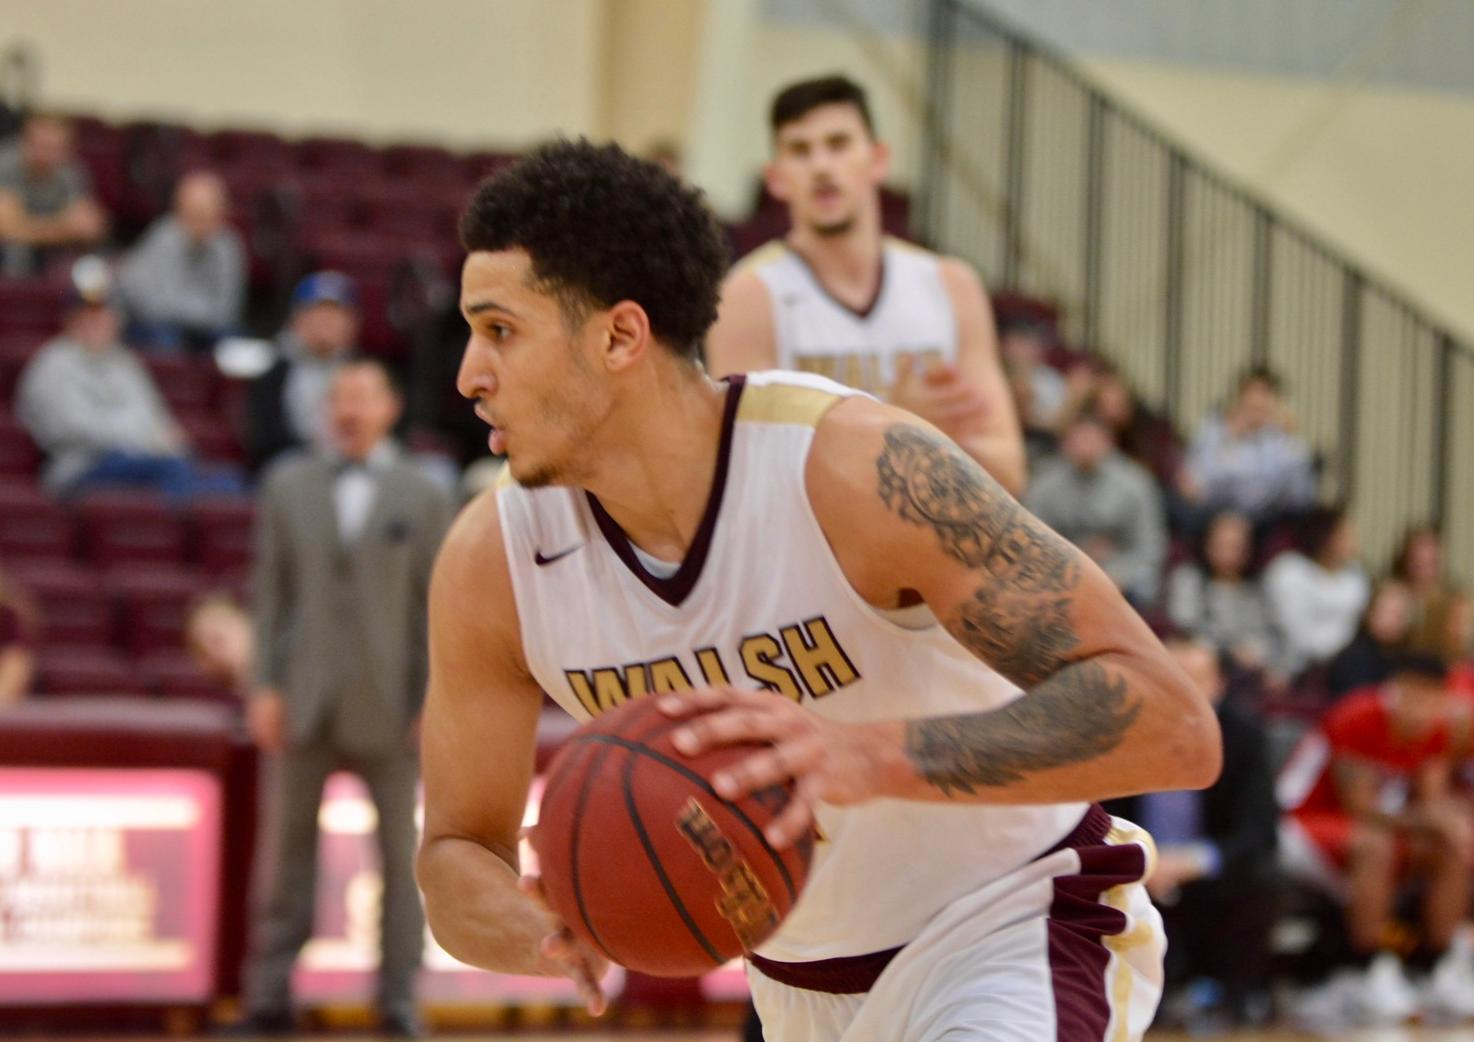 Walsh Swats Bluefield State 75-63